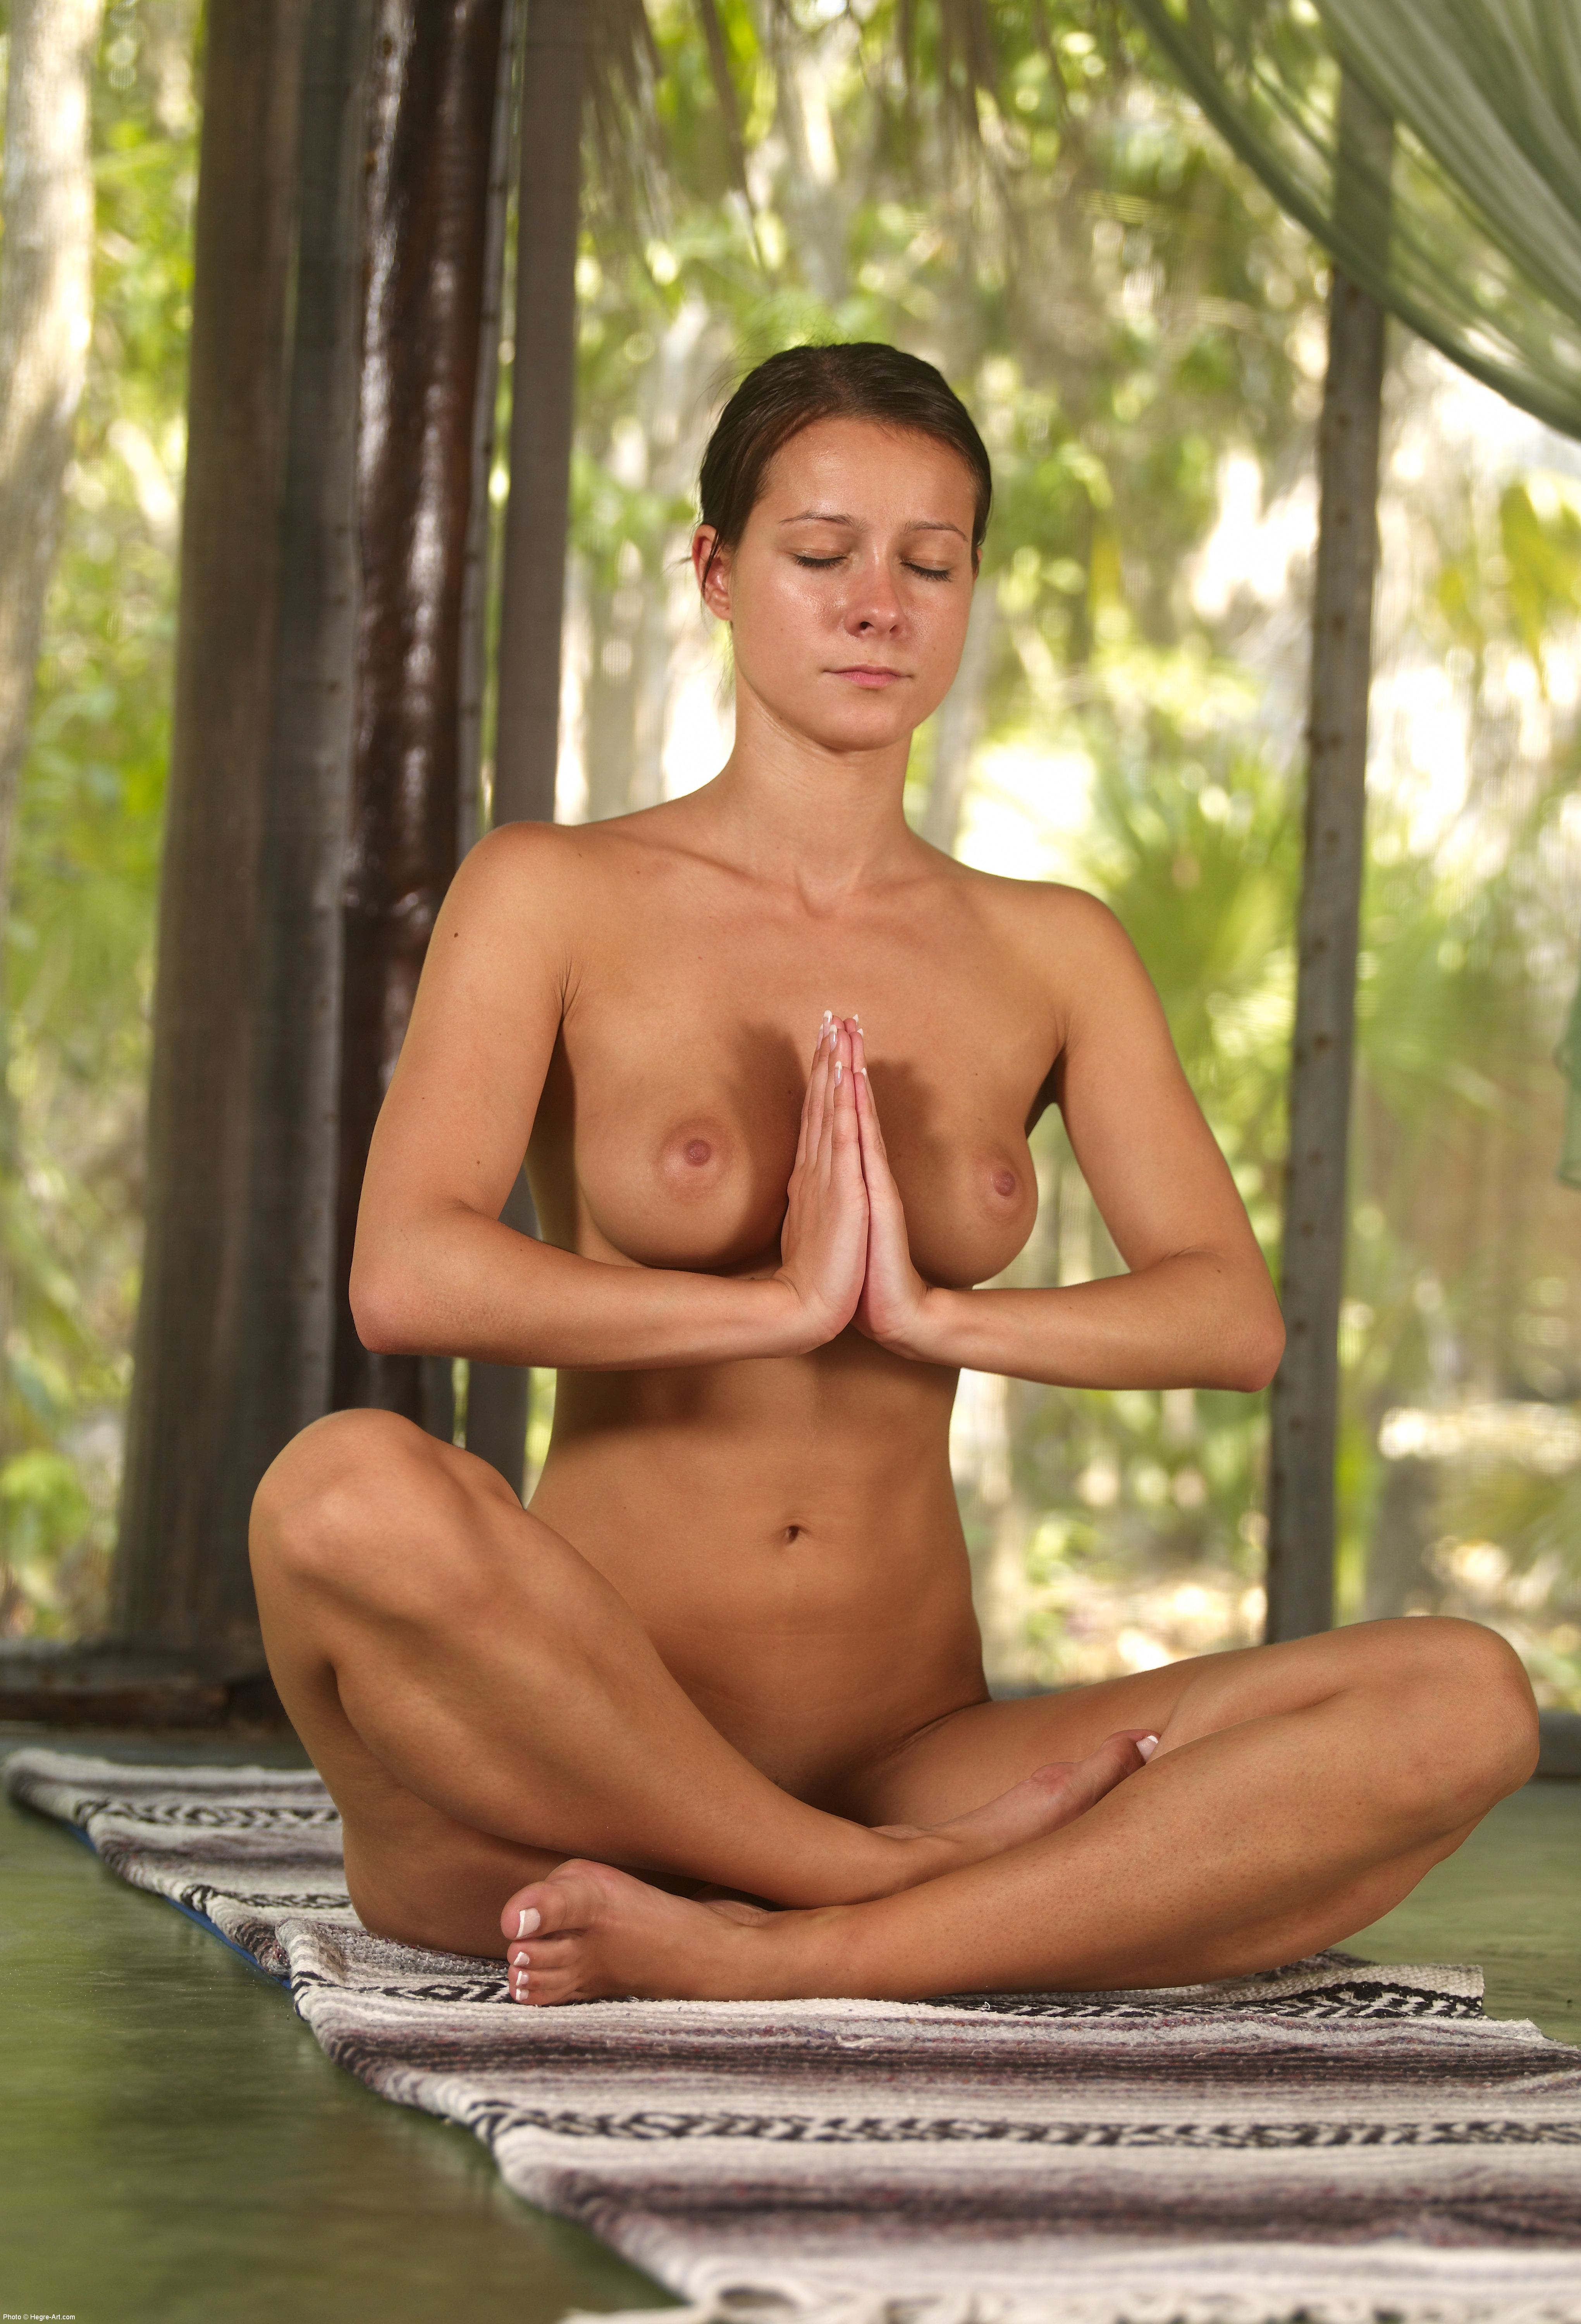 from Walter hot yoga women naked